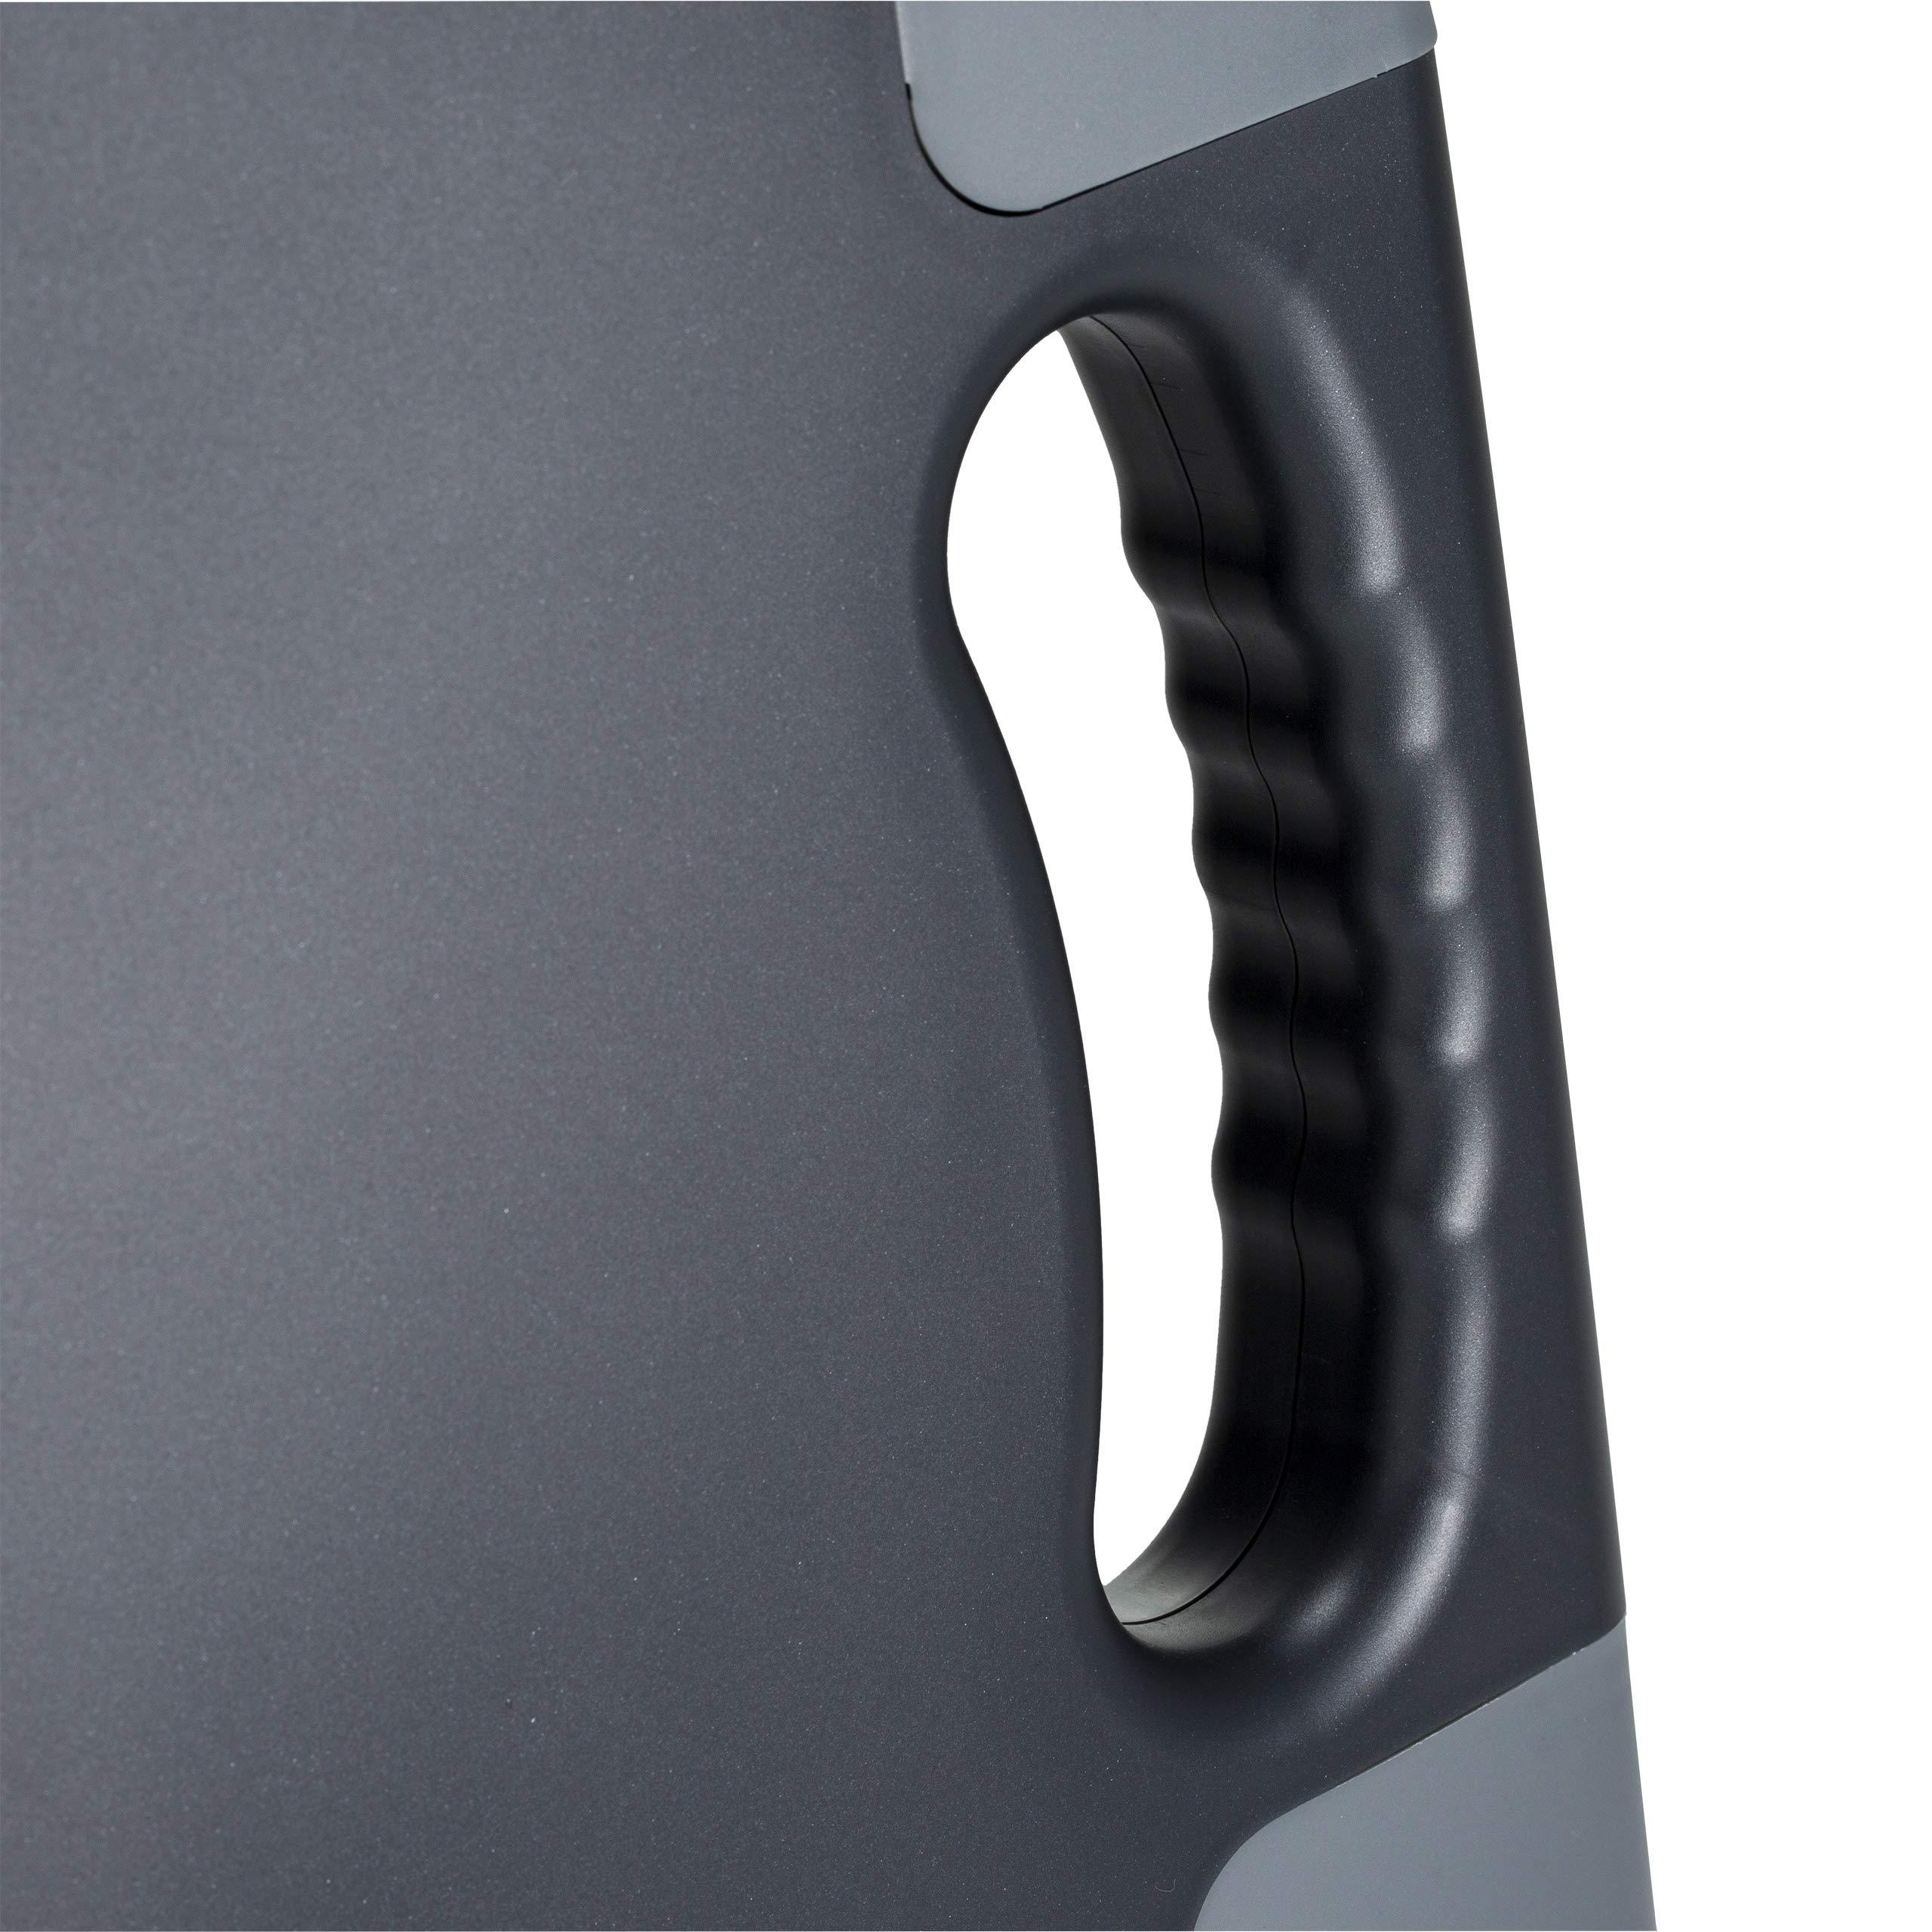 Charcoal 83301 Ergonomic Hand Grip Officemate Portable Clipboard Storage Case